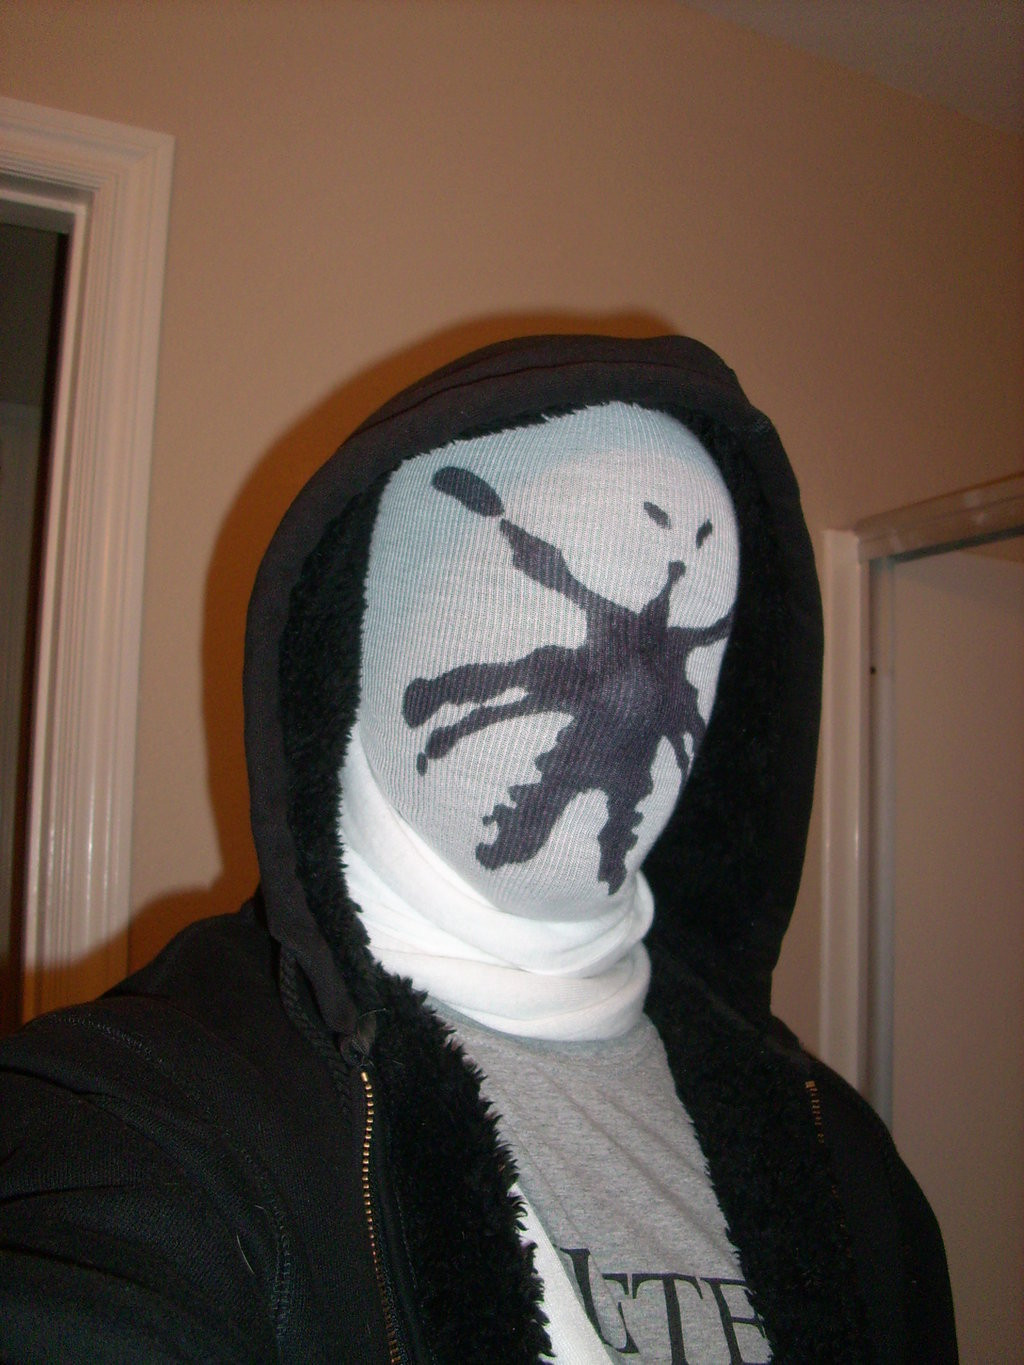 Best ideas about Rorschach Mask DIY . Save or Pin Finished Rorschach Mask by trebory6 on DeviantArt Now.